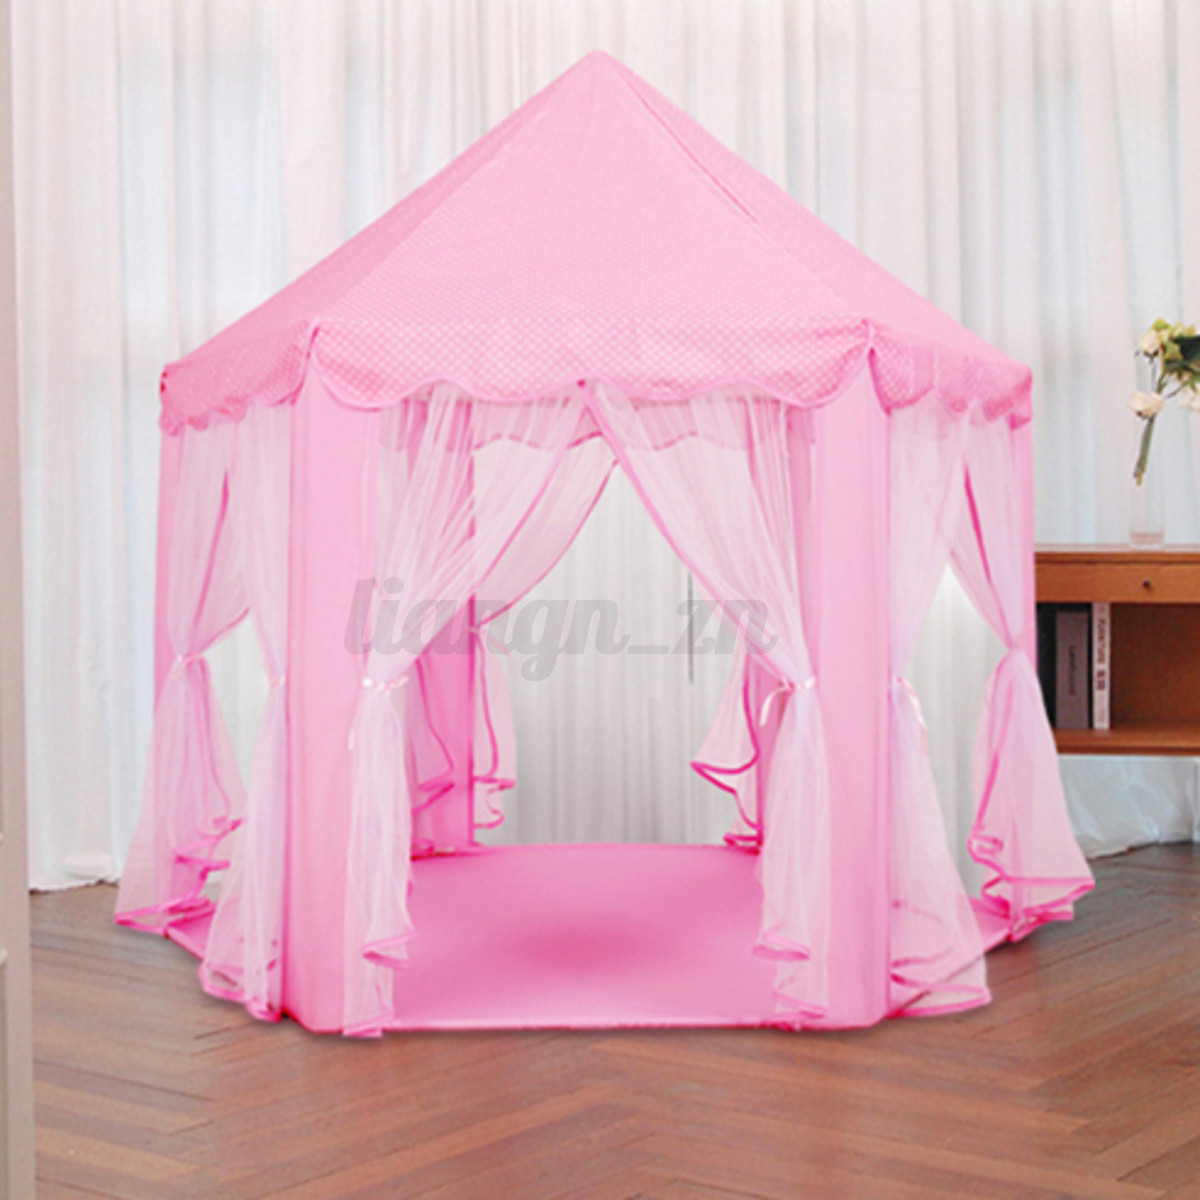 princesse fille tente de ch teau jeu tipi cabane jouet jeux guirlande lampe led ebay. Black Bedroom Furniture Sets. Home Design Ideas